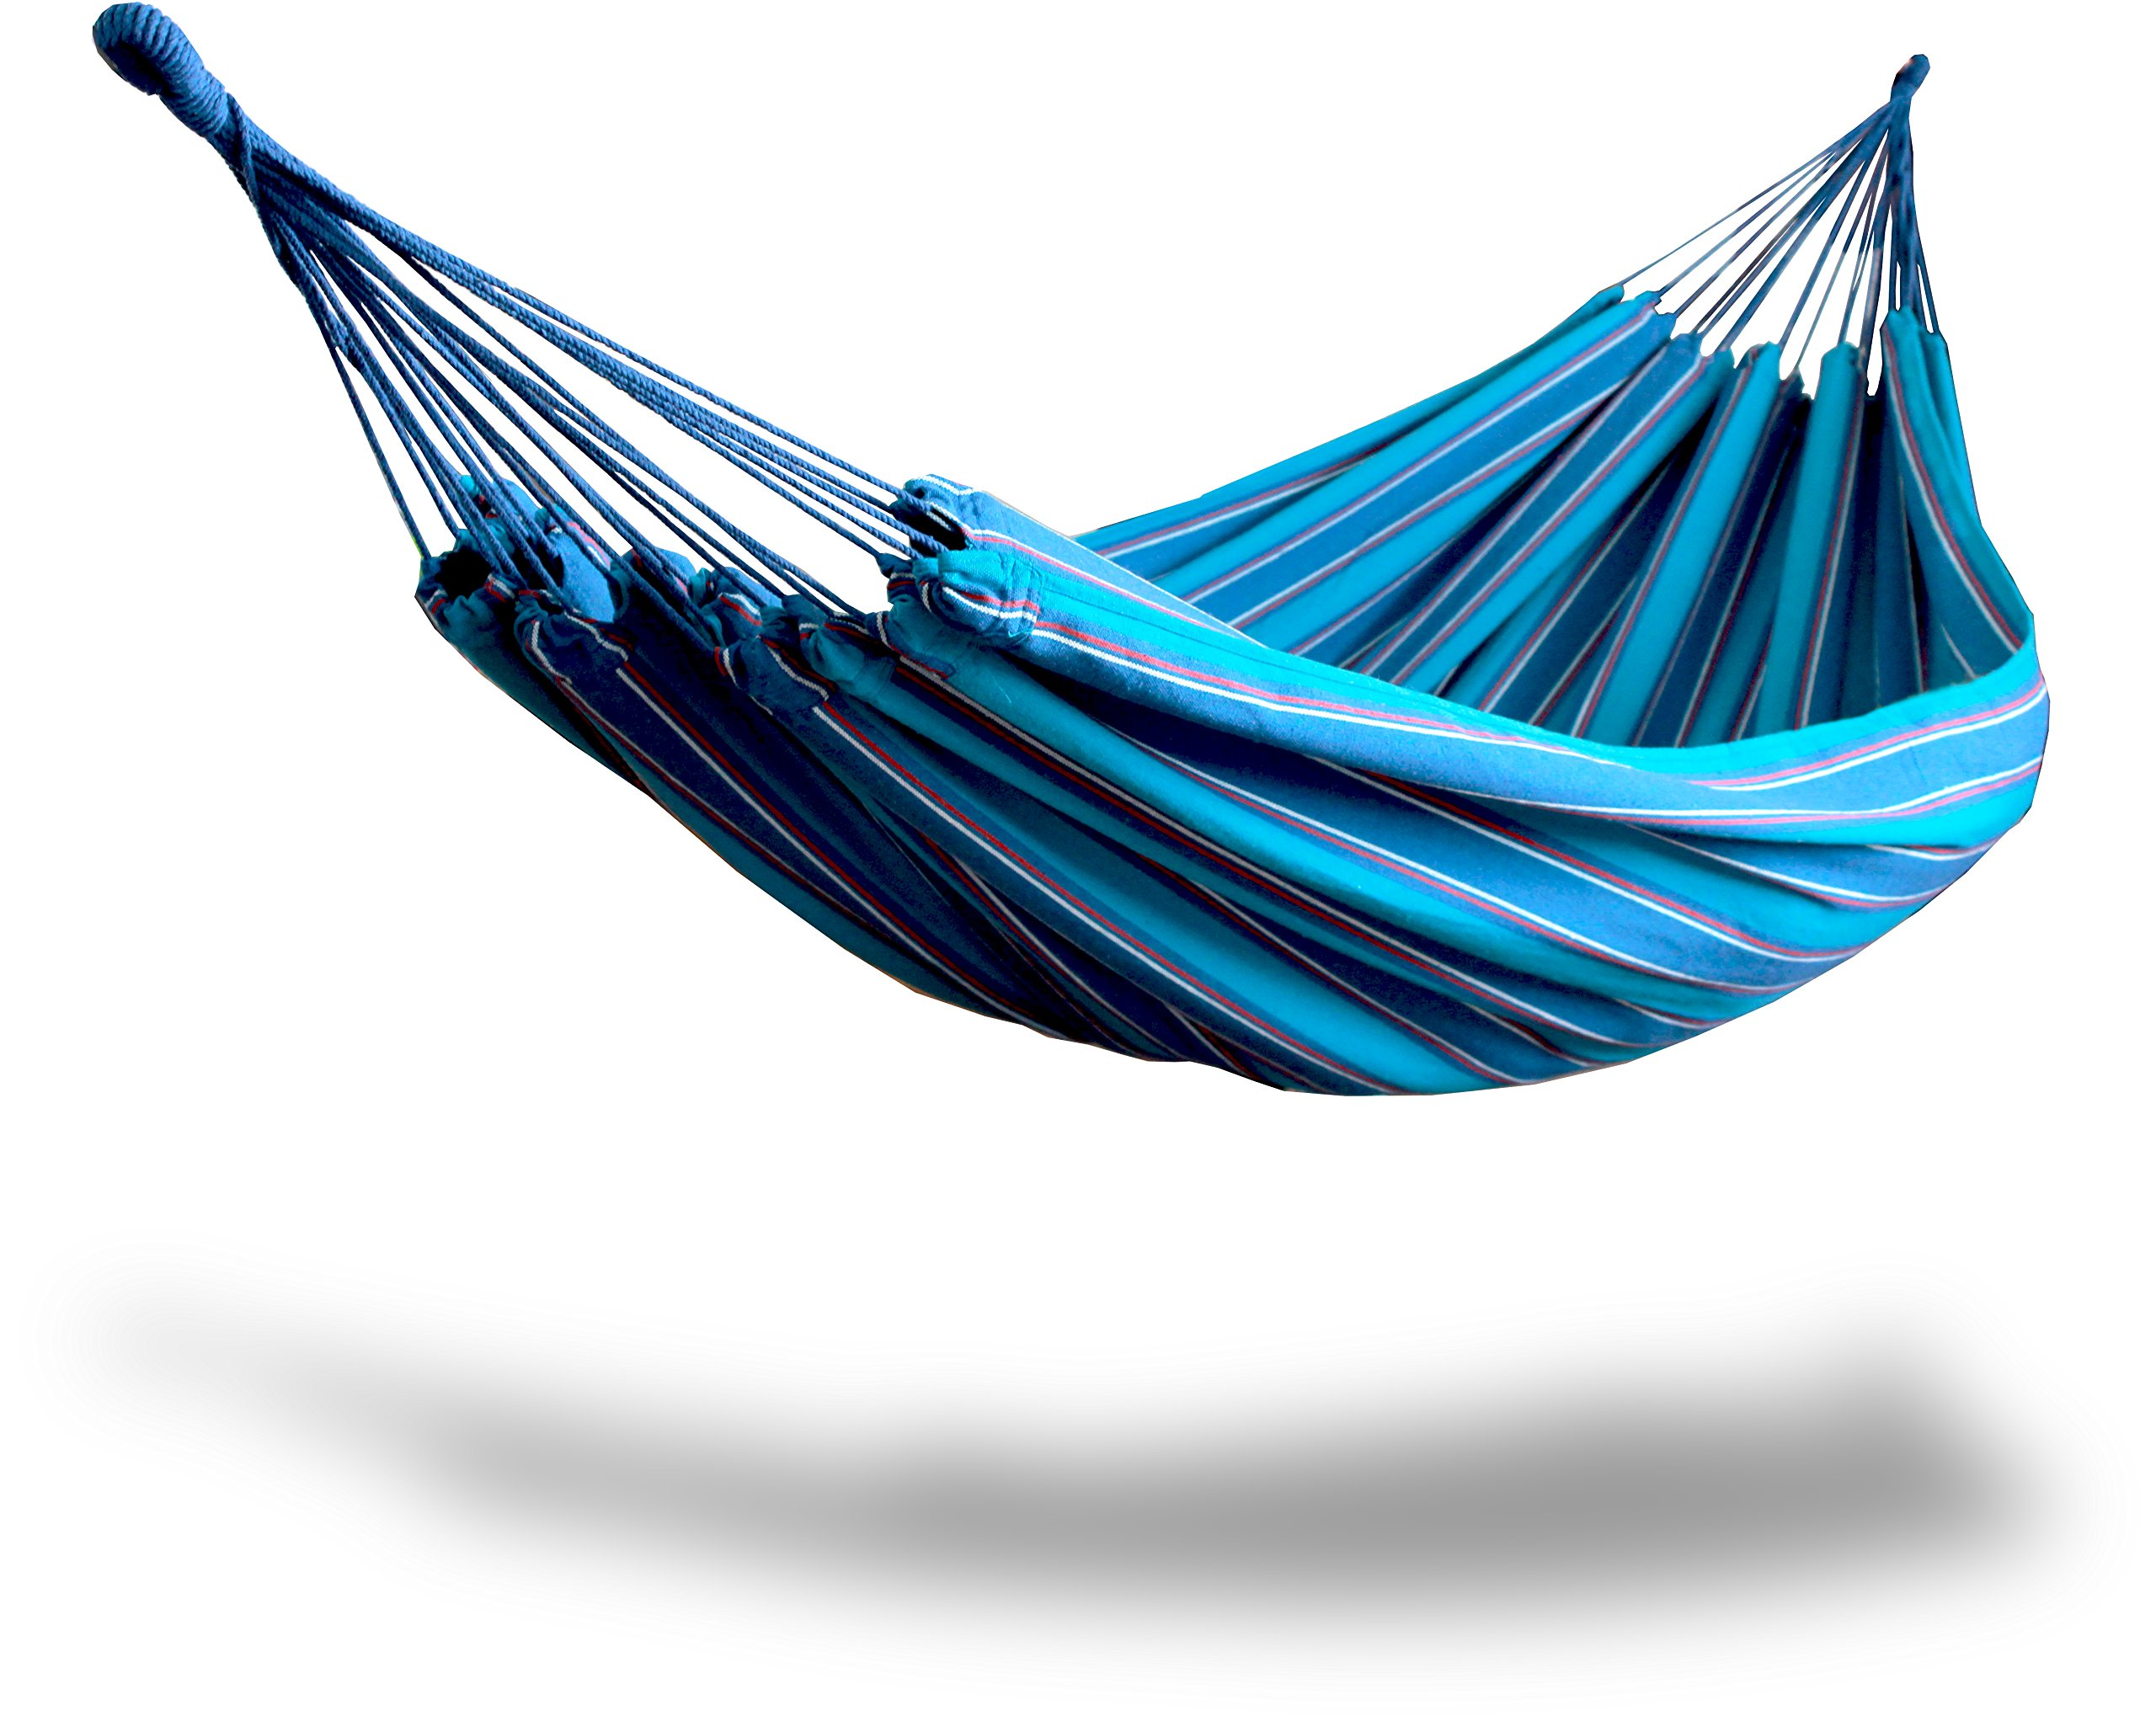 Hammaka Woven Brazilian Hammock, Blue - The cozy and snug wrap around design will roll up on the sides when lying lengthwise like any hammock without a spreader bar No assembly required (just hang) 330 lb. Weight capacity - patio-furniture, patio, hammocks - 81zpOLP7esL -